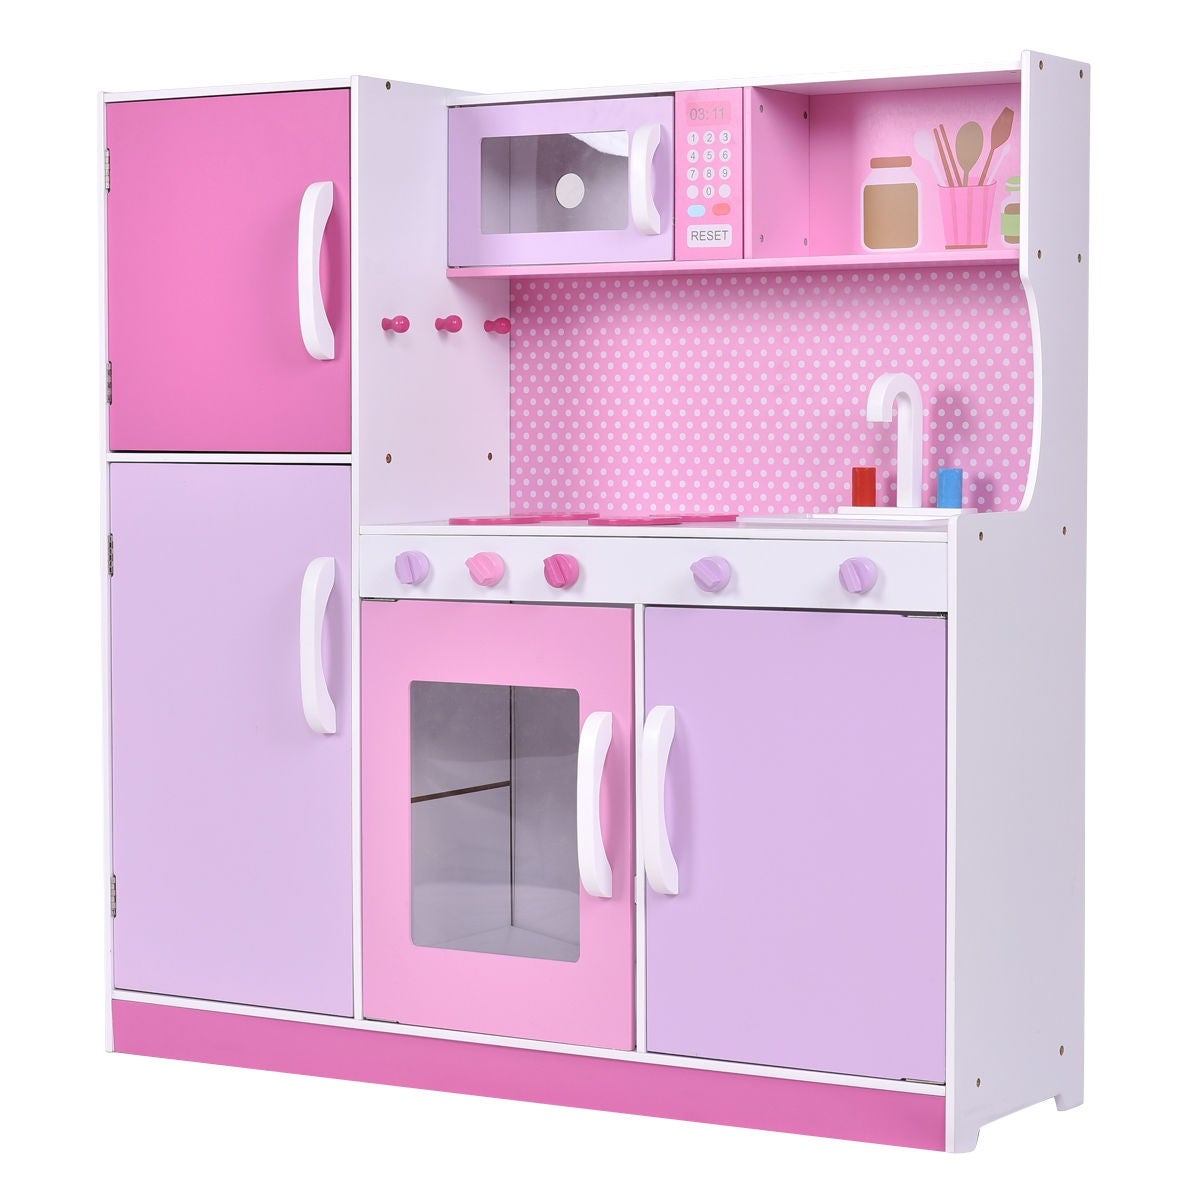 c2e0c8167132 Shop Costway Kids Wood Kitchen Toy Cooking Pretend Play Set Toddler Wooden  Playset Gift - Free Shipping Today - Overstock - 18531896